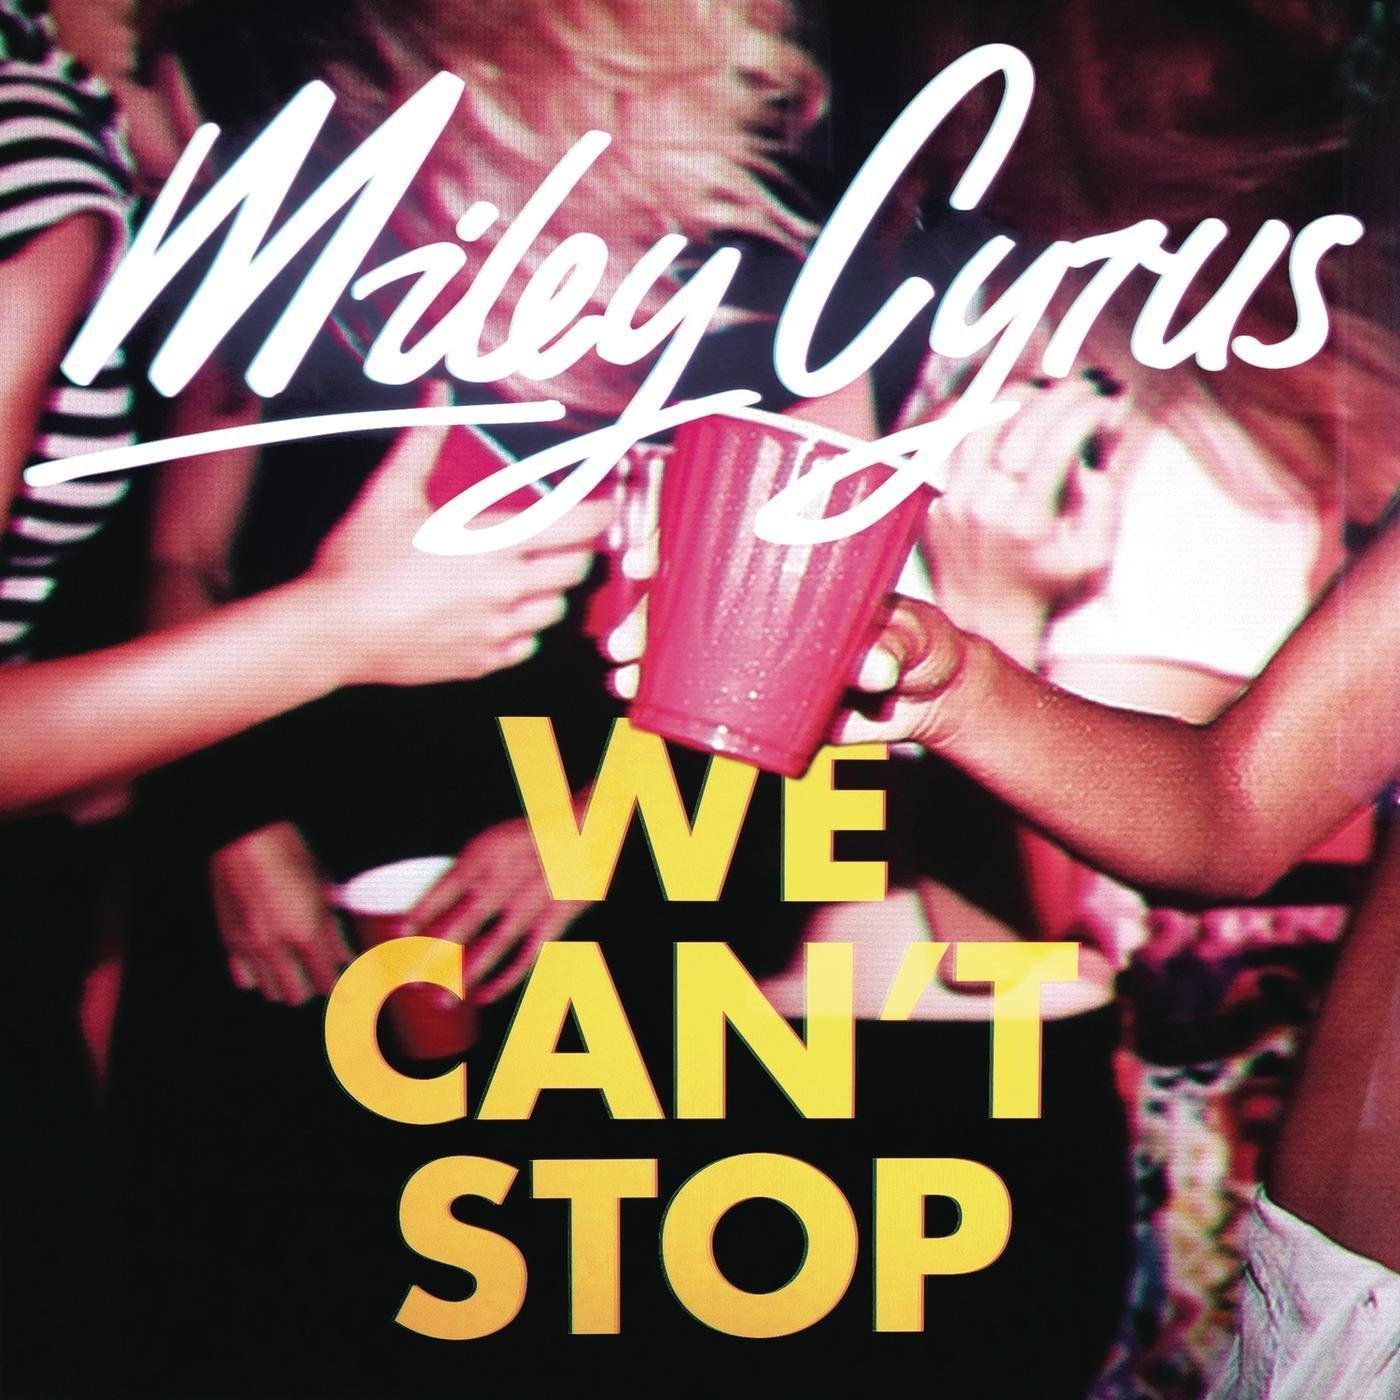 [SINGLE] MILEY CYRUS - WE CAN'T STOP 262033